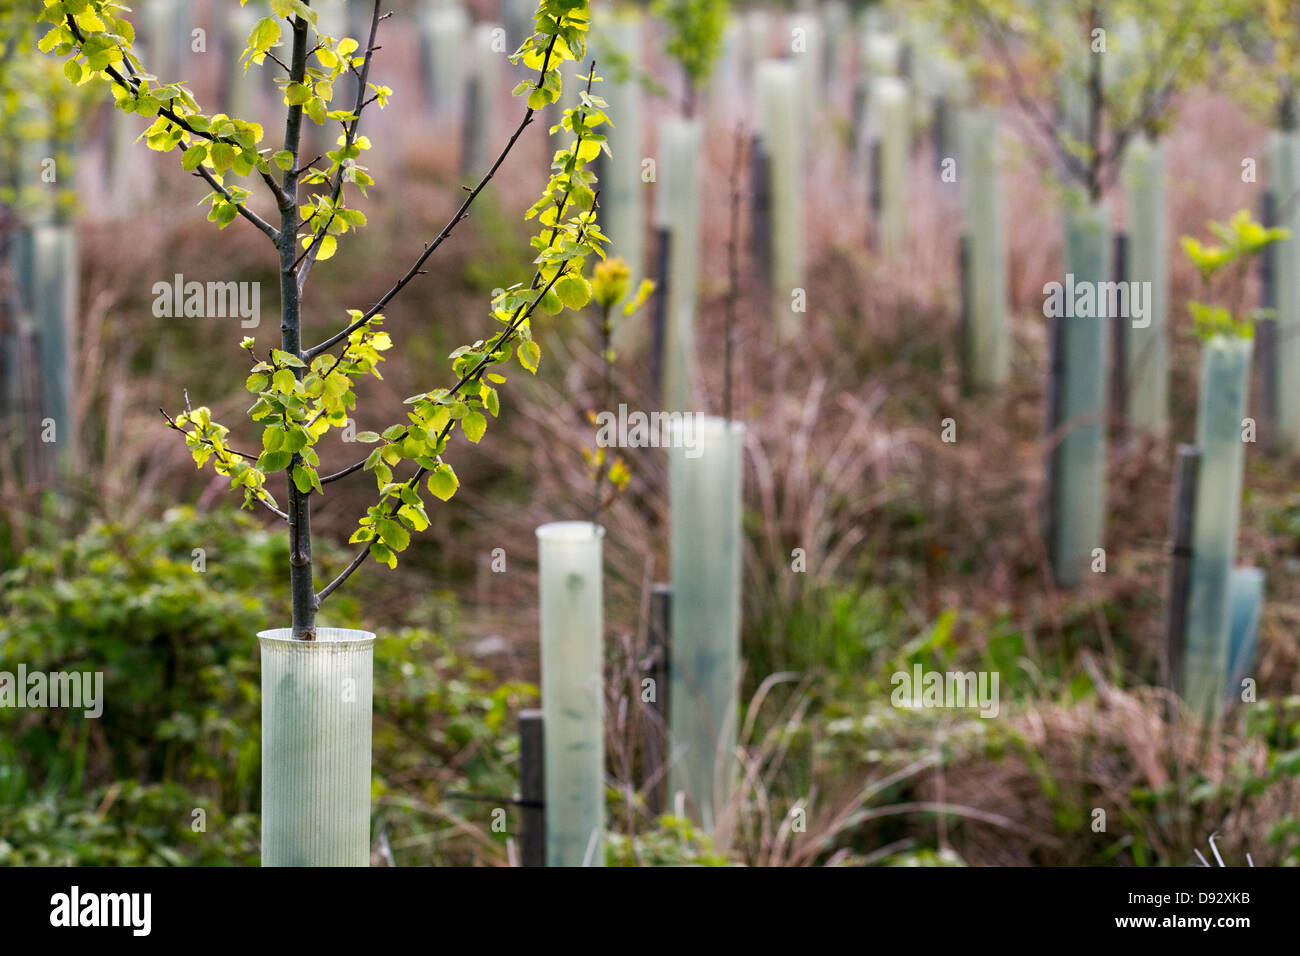 Spring leaf growth on young Birch trees, protected in plastic tree tubes,  growing in forestry Plantation, North - Stock Image